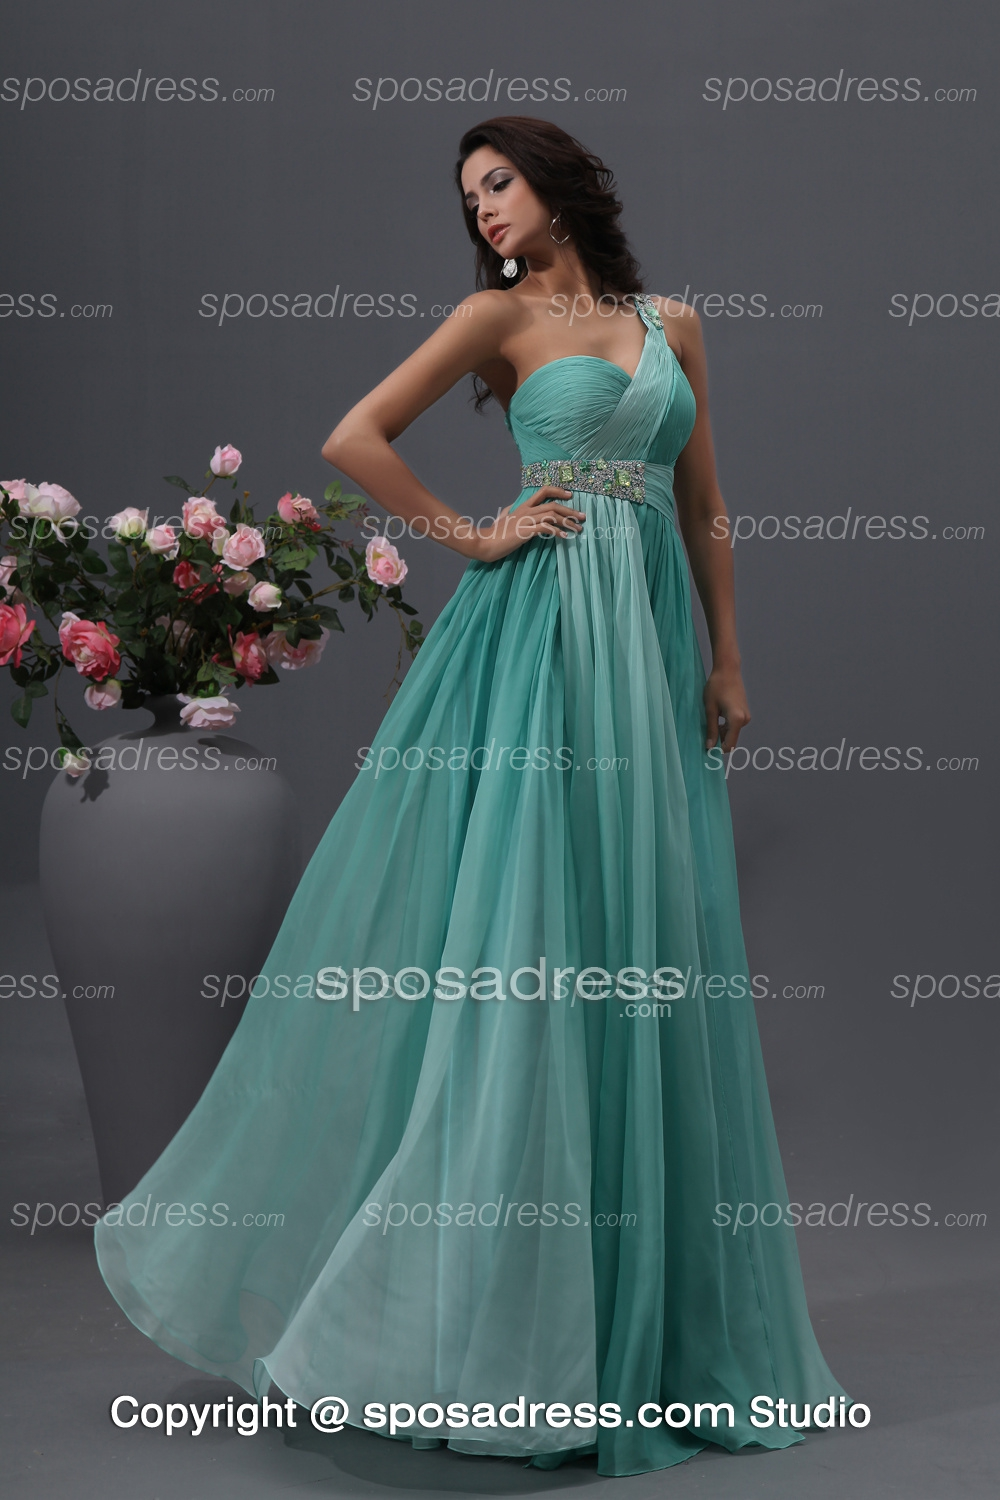 Stylish Jade A-line Sequined Chiffon Evening Dress With Onr Strap - Sposadress.com